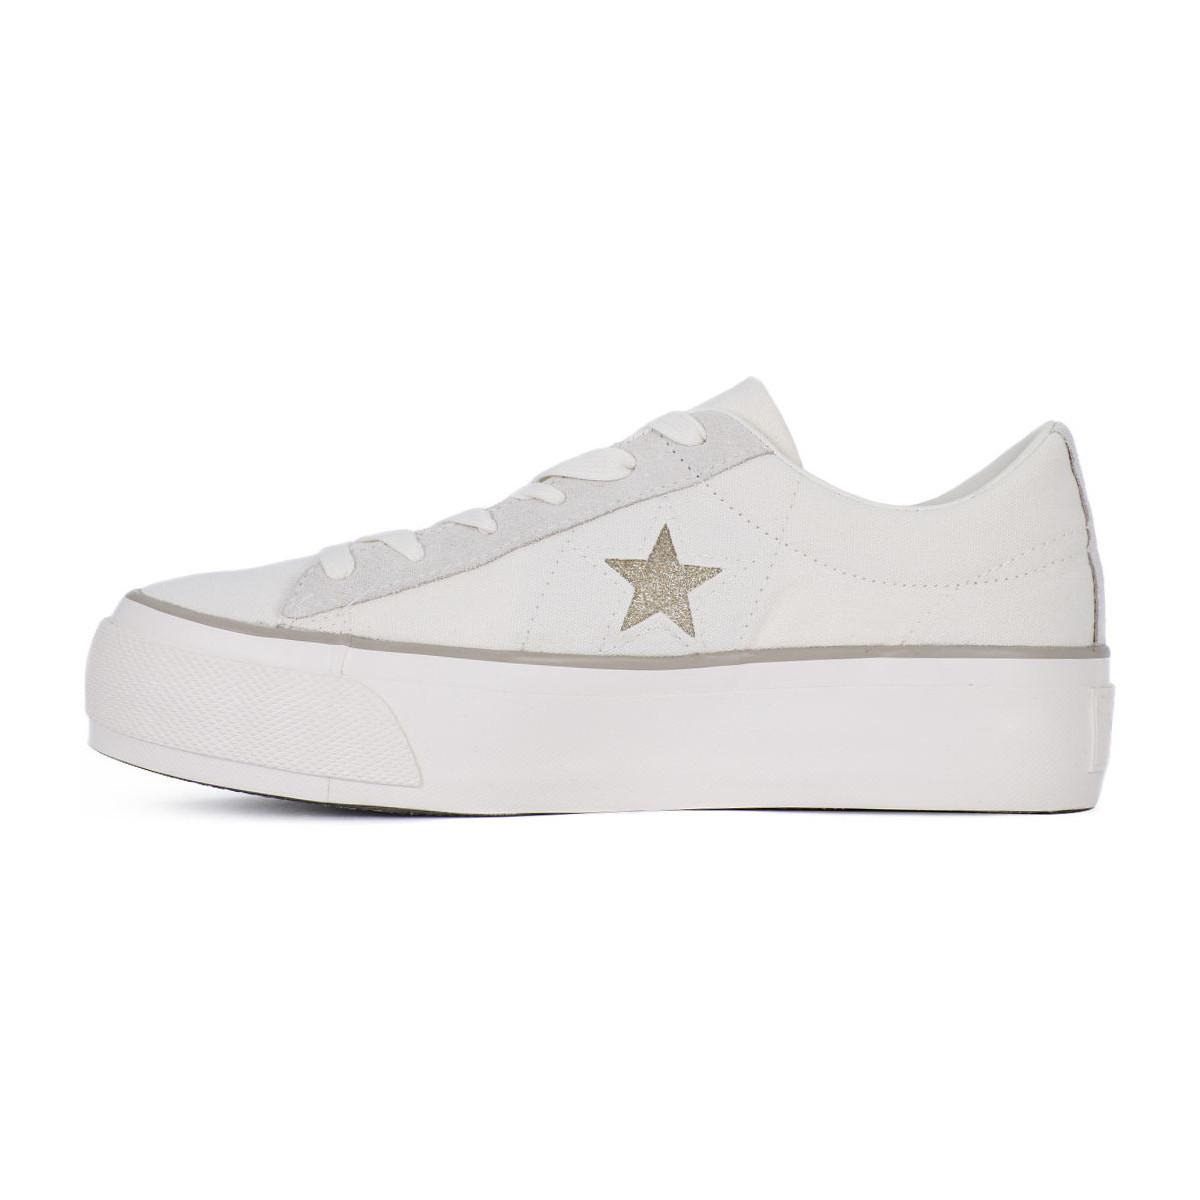 8bc621262911 Gallery. Previously sold at  Spartoo · Women s Converse Platform ...